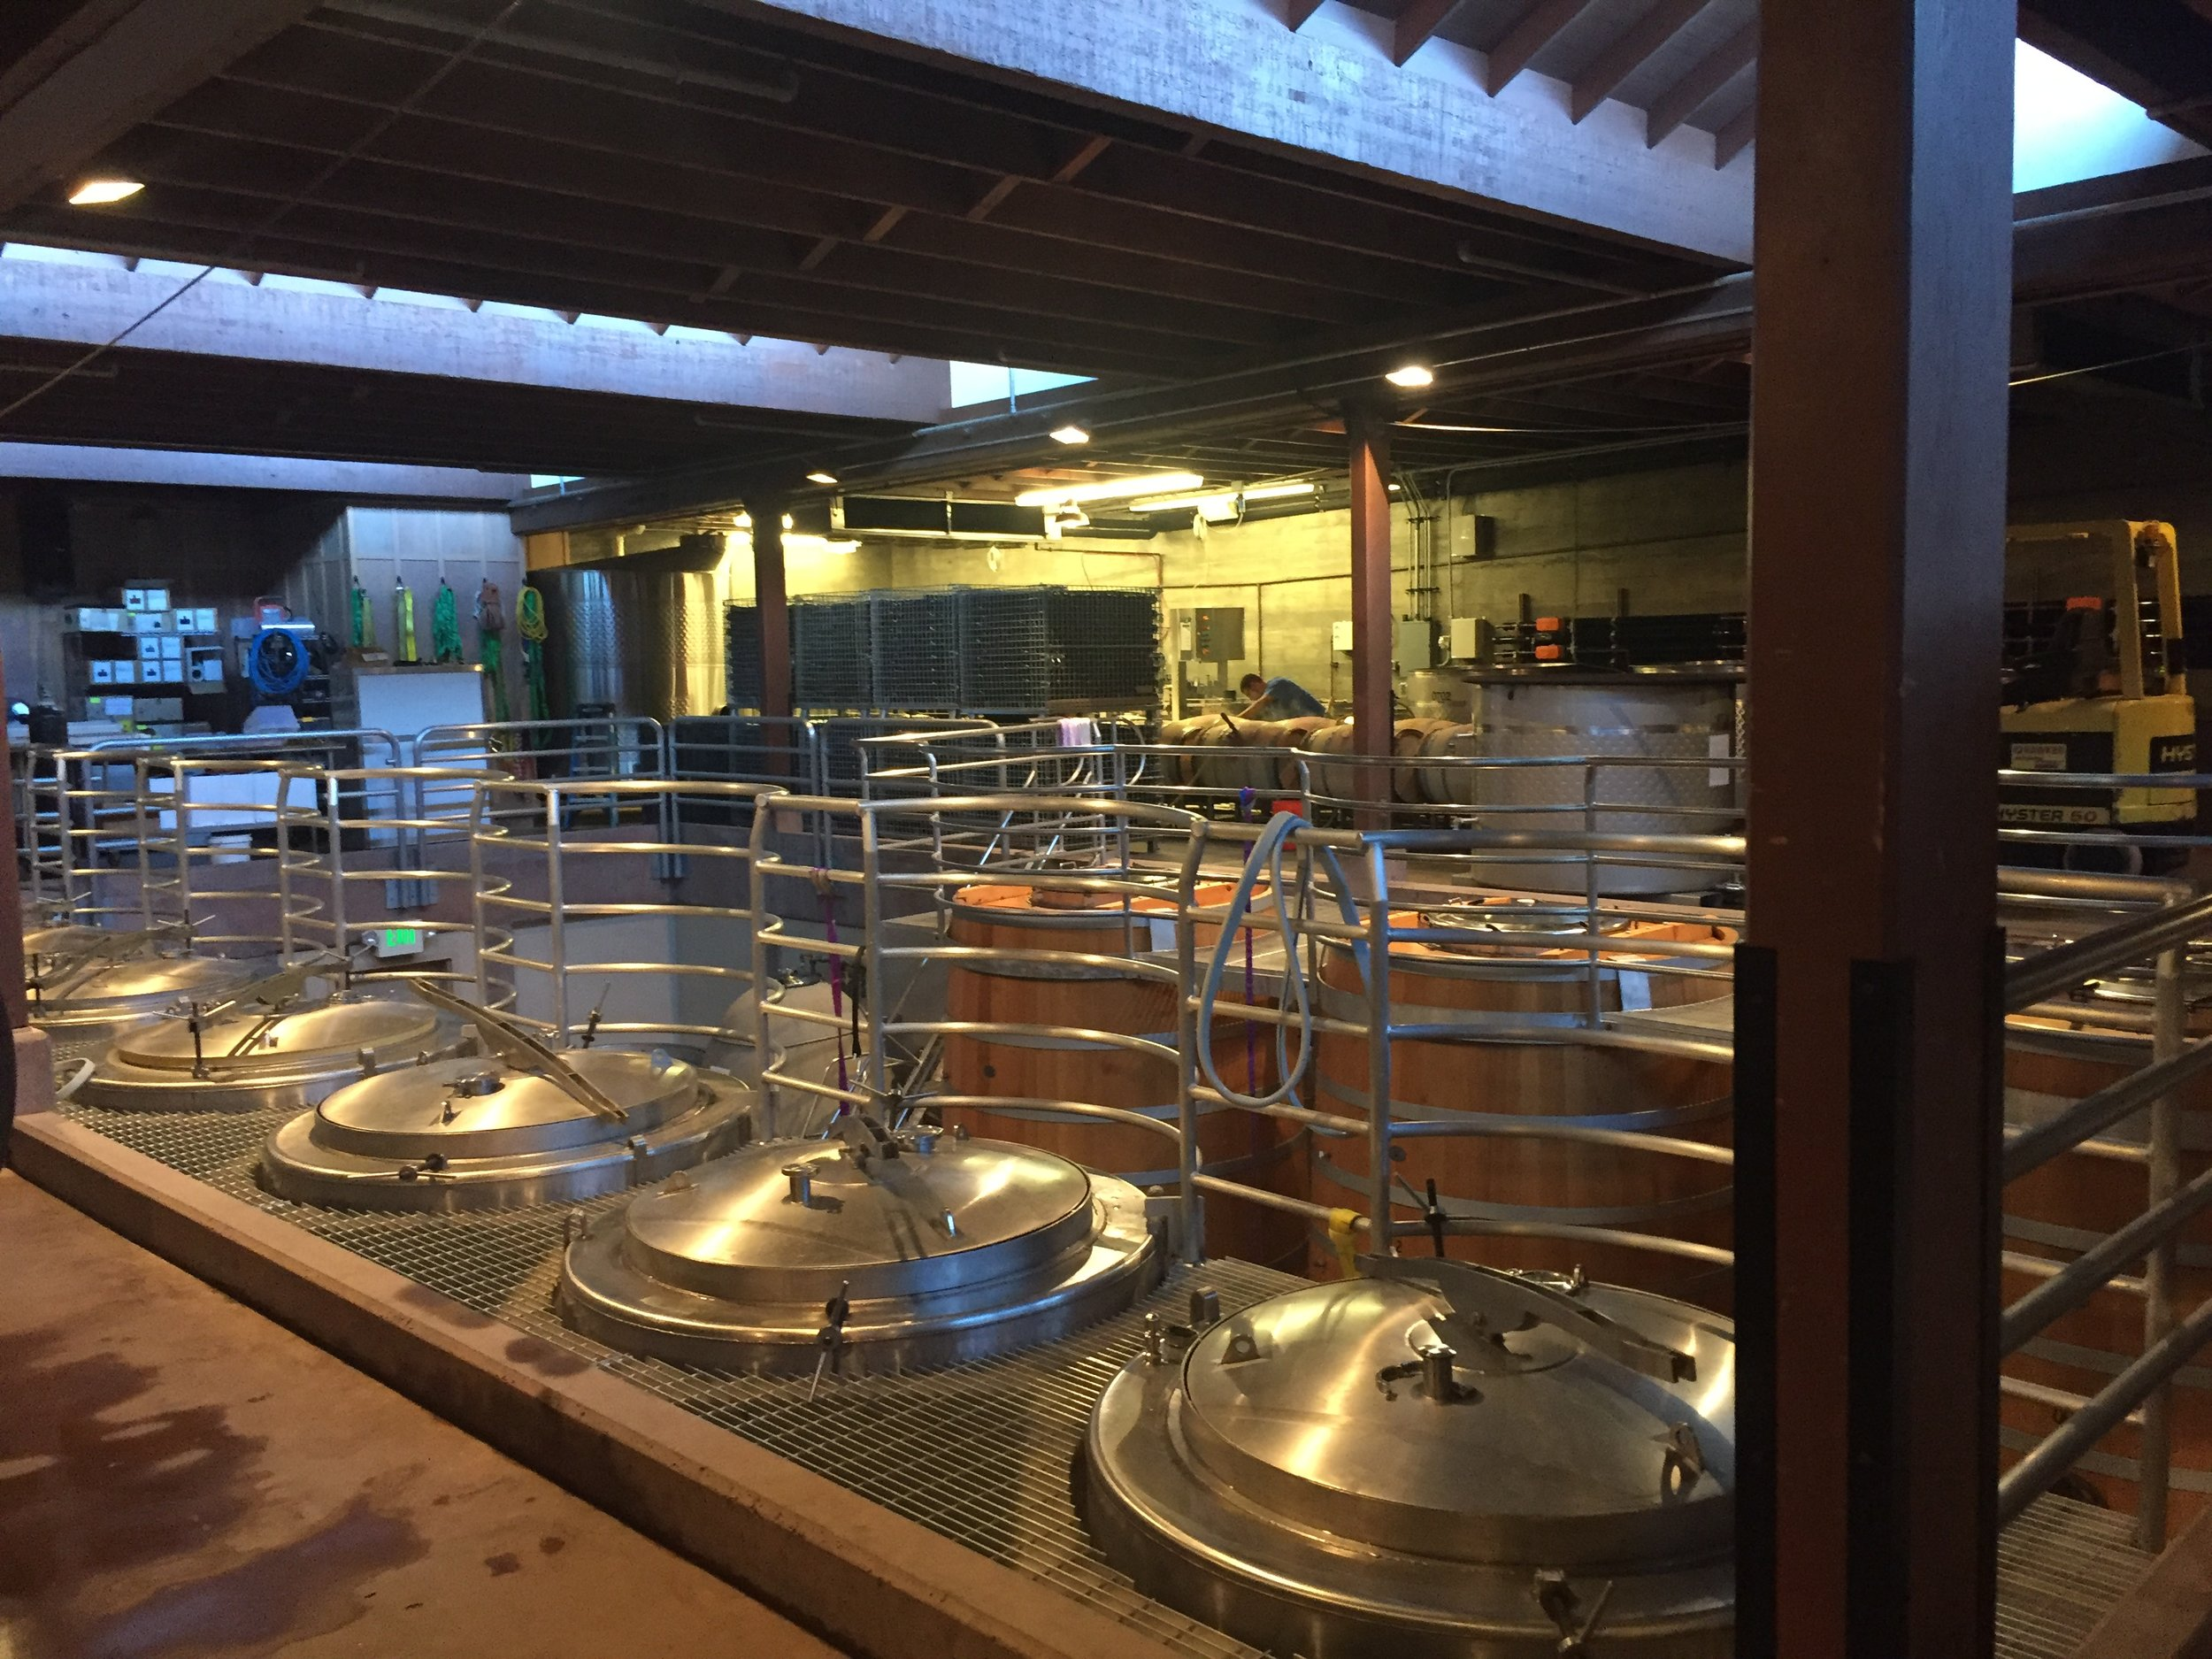 Large stainless steel fermentation tanks in action during crush and production.